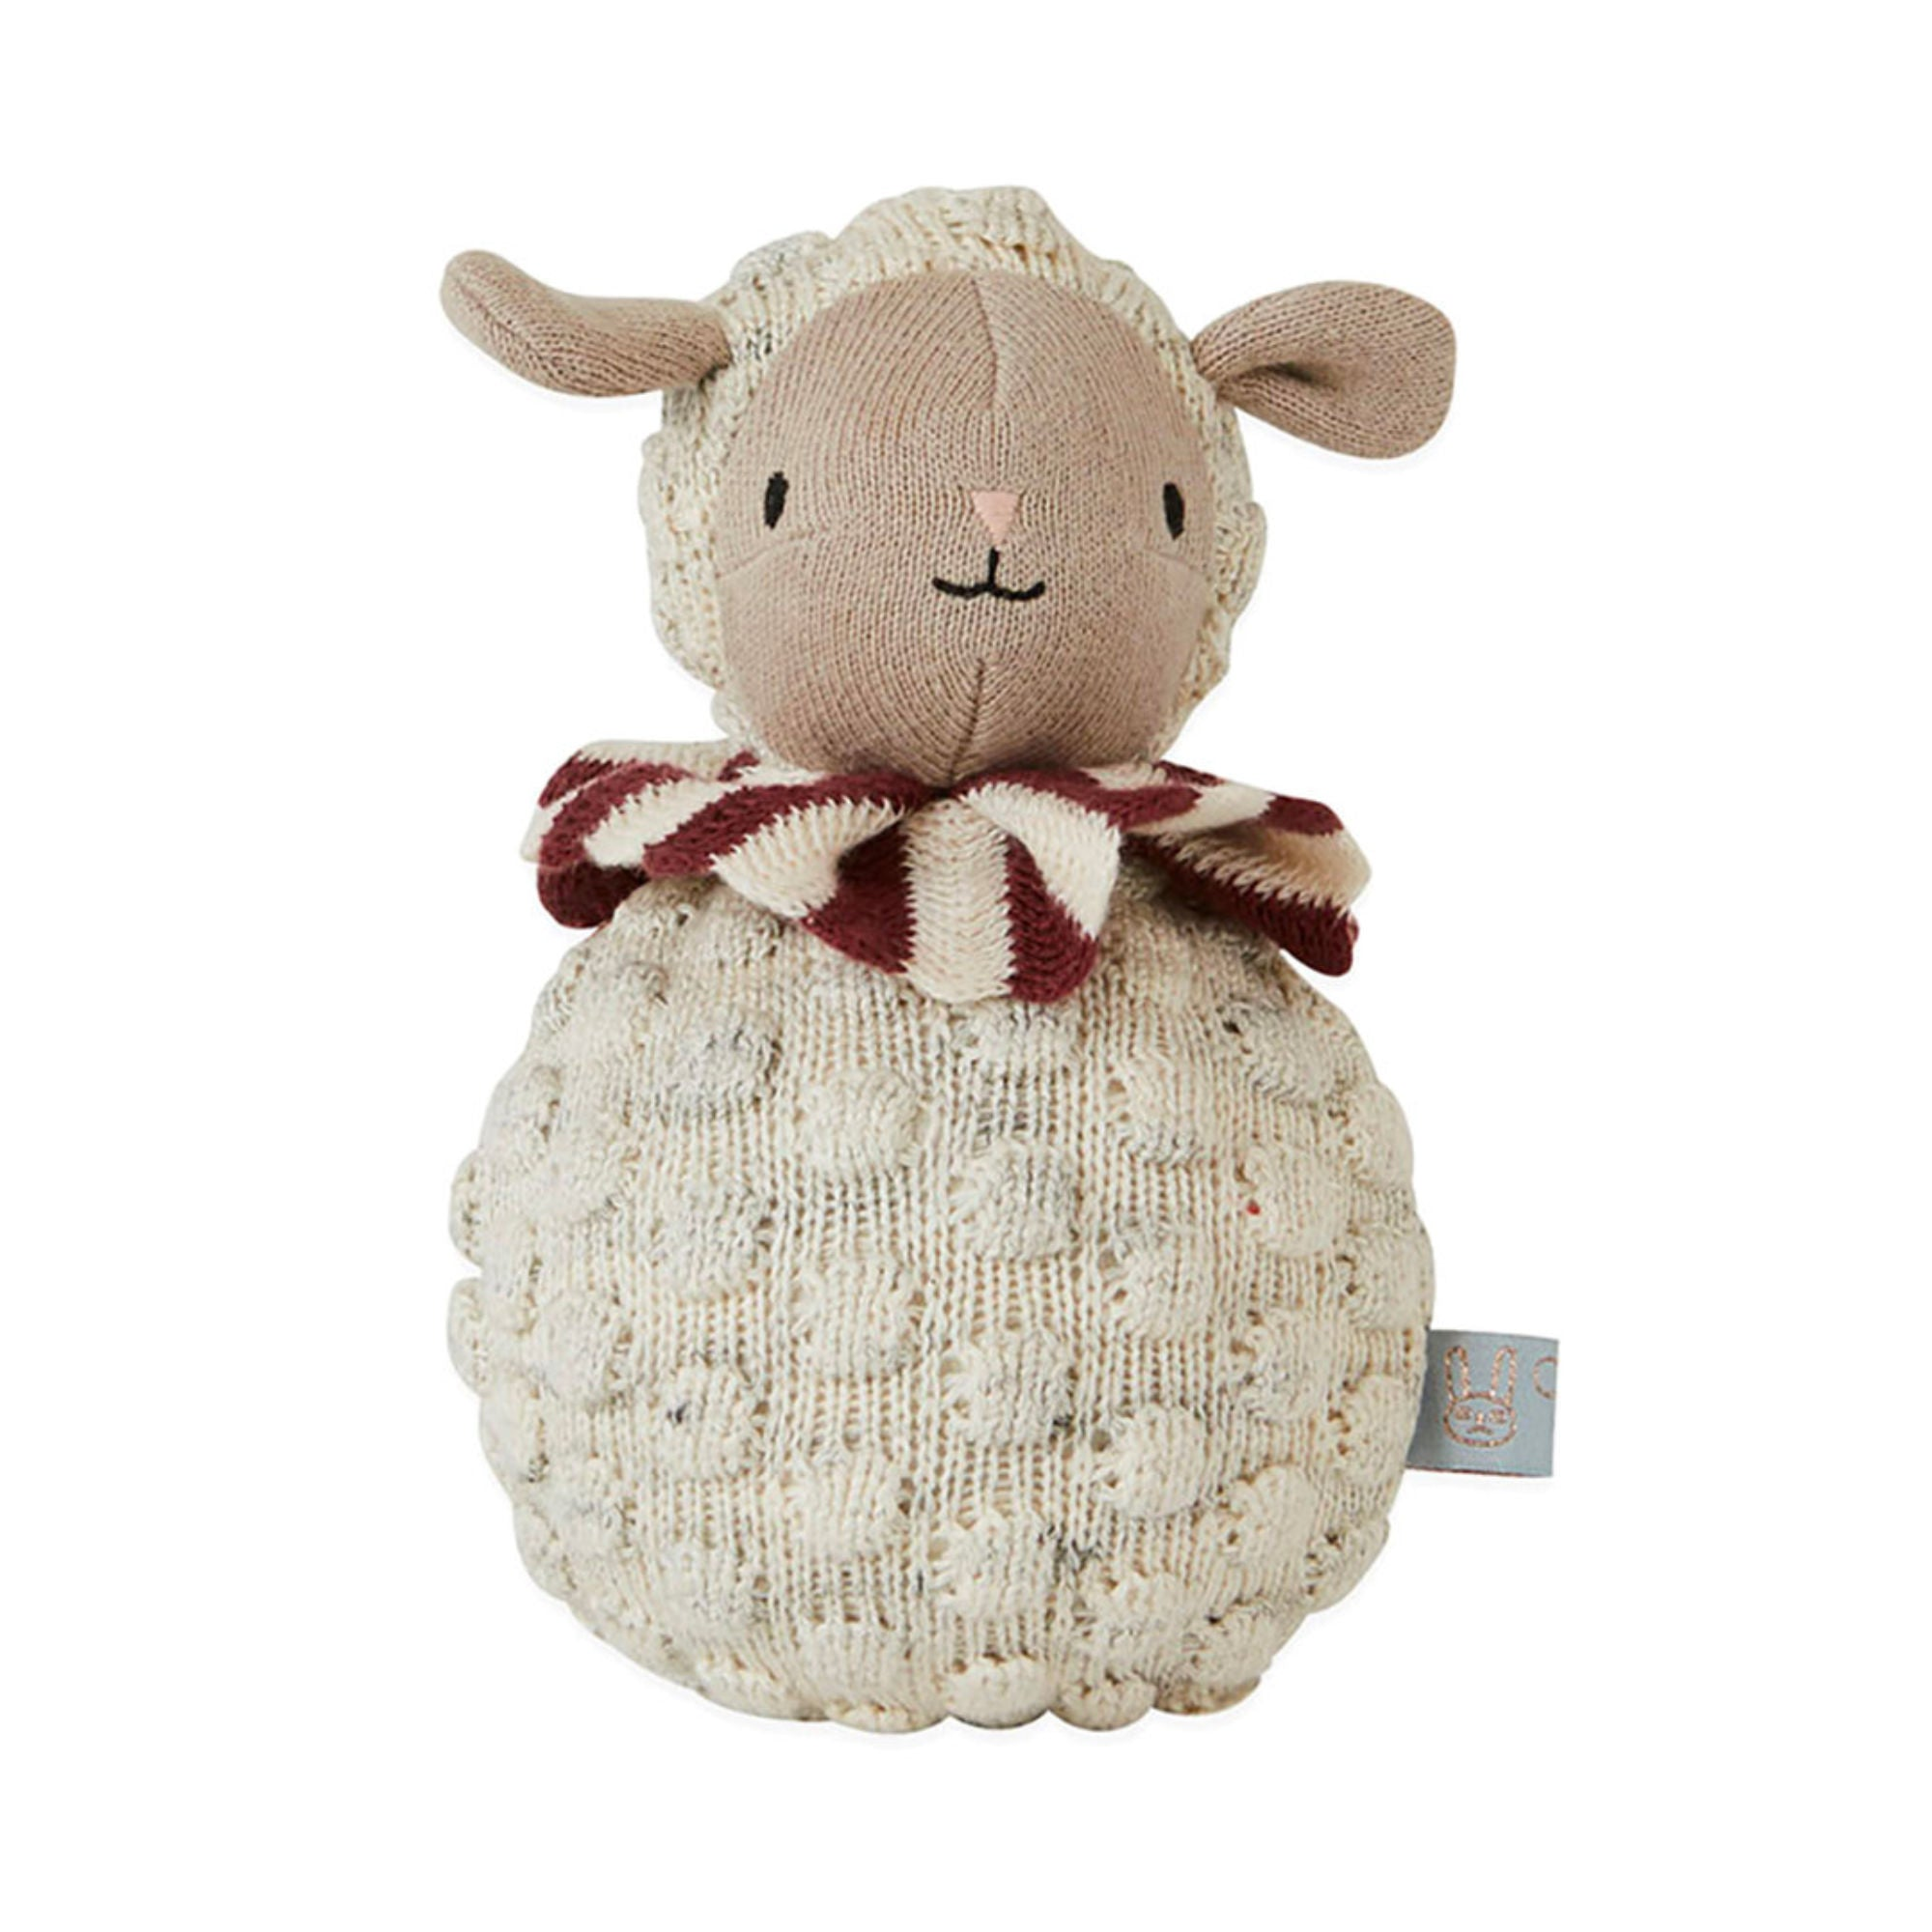 OYOY Roly Poly sheep stuffed animal